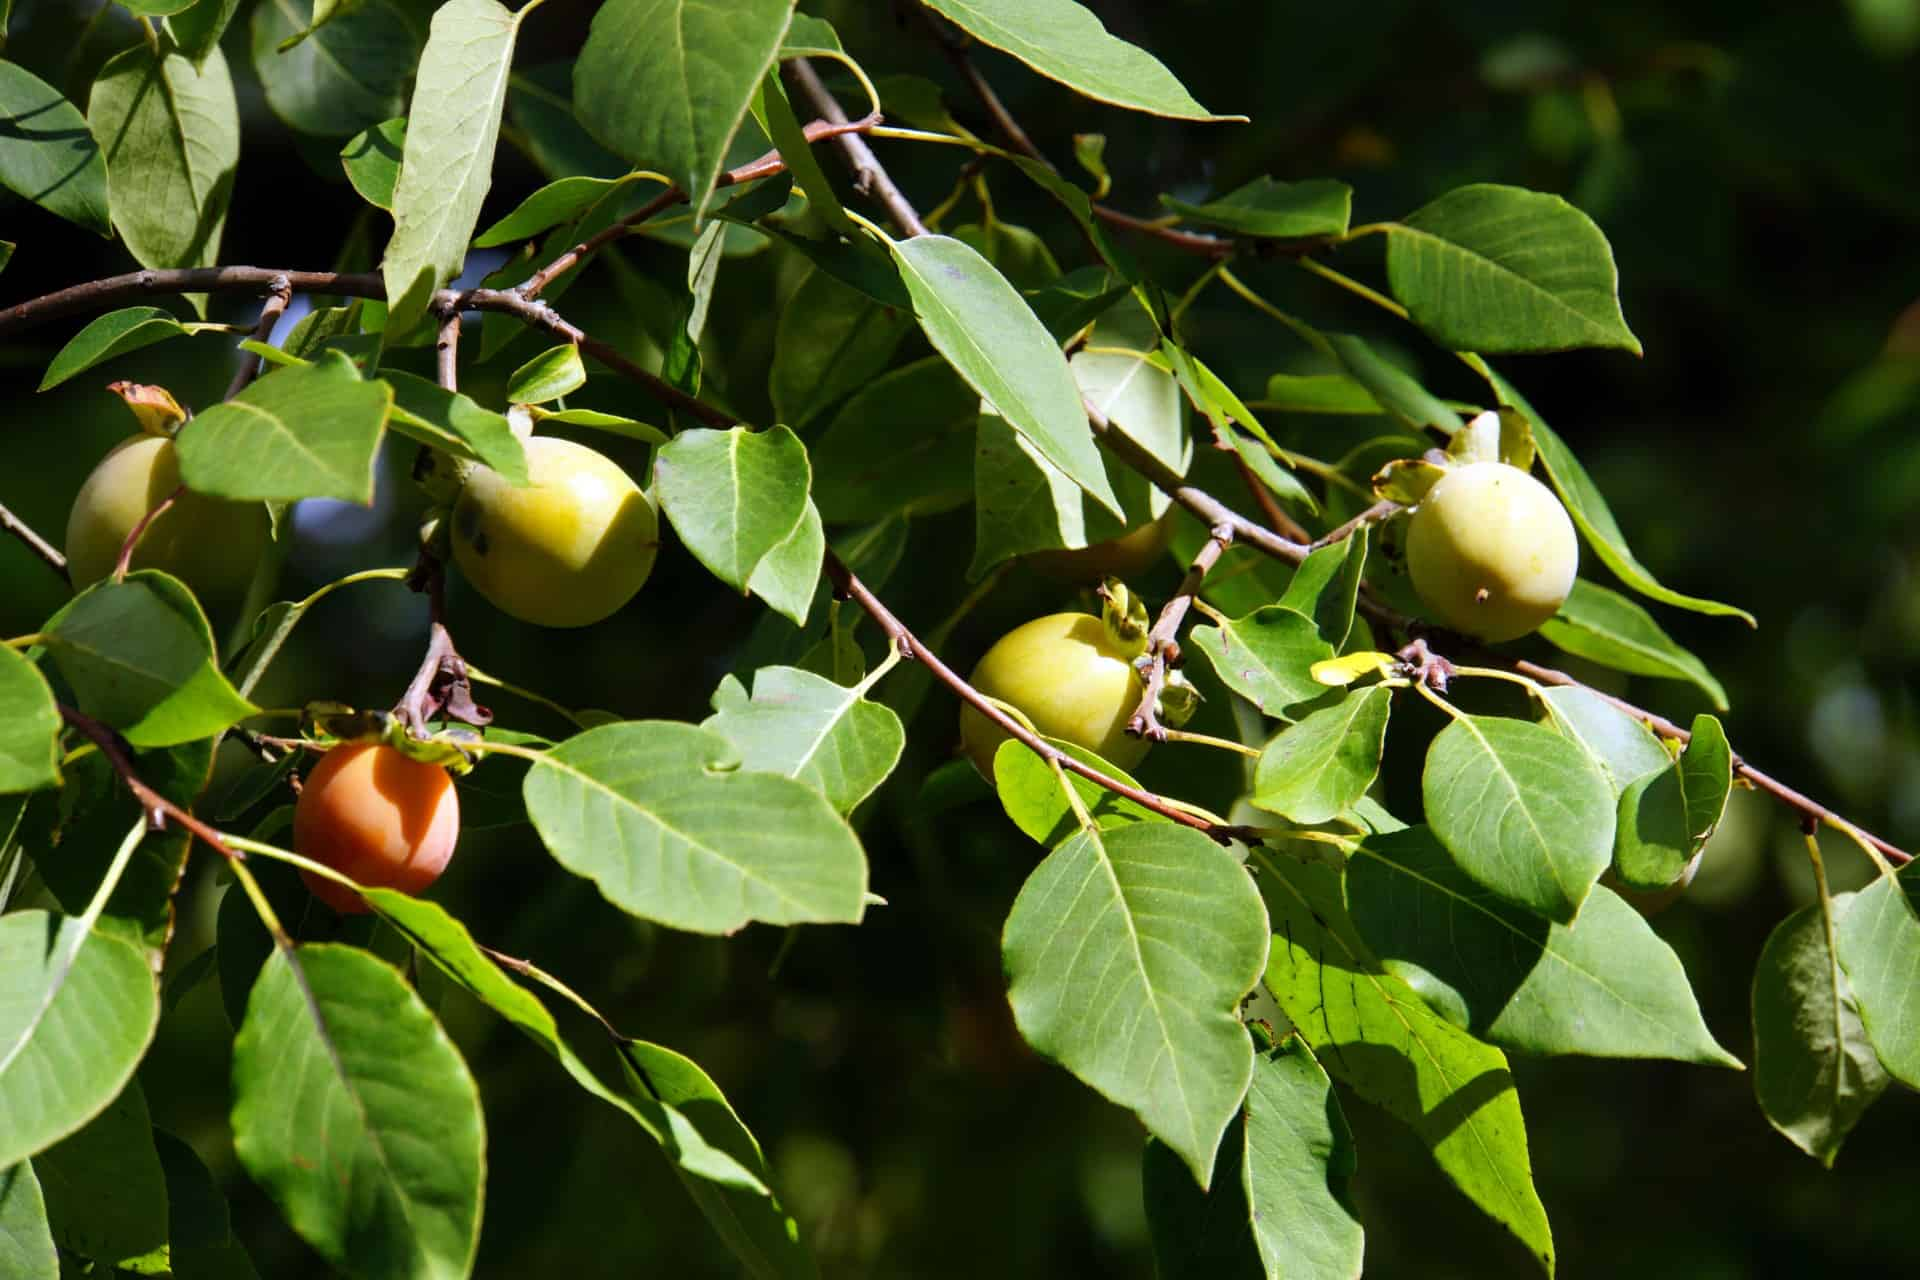 The fruit of American persimmon trees tastes like apricots.